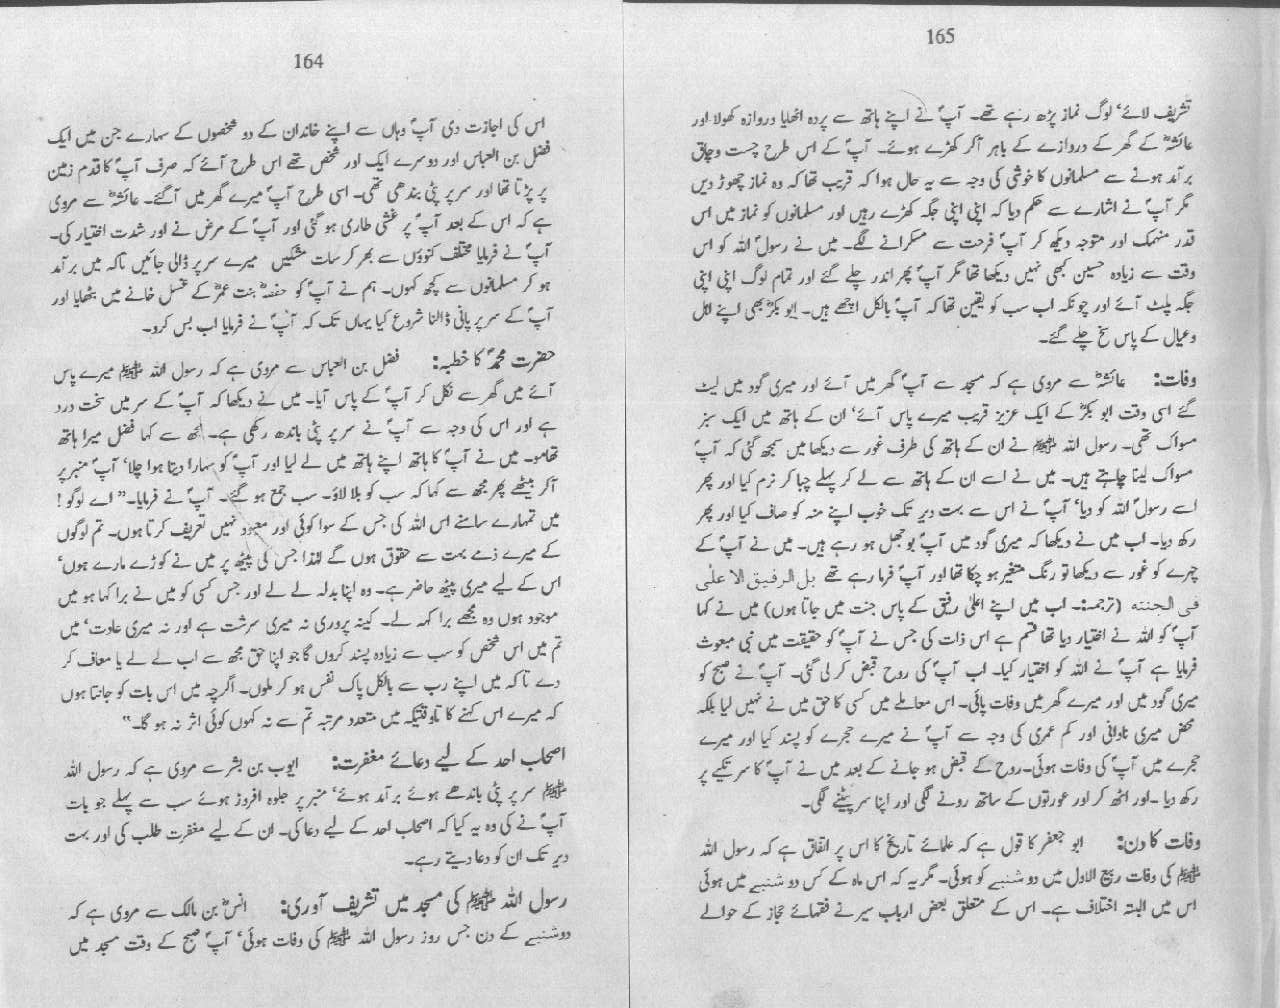 seerat un nabi in urdu essay  essay on seerat un nabi in urdu